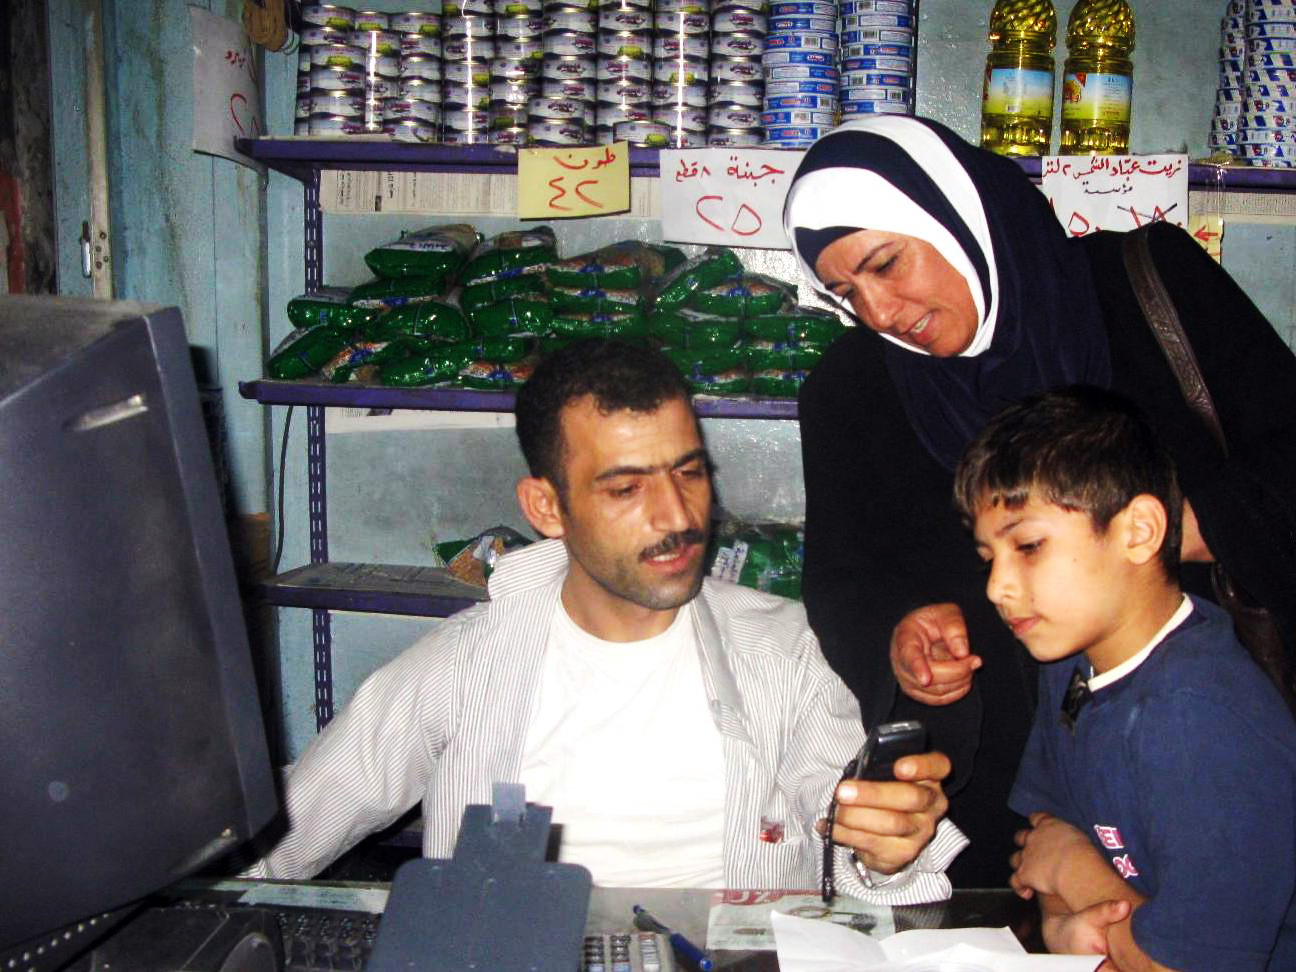 Iraqi refugees use a WFP food voucher on their mobile phone to purchase food from a shop in Damascus